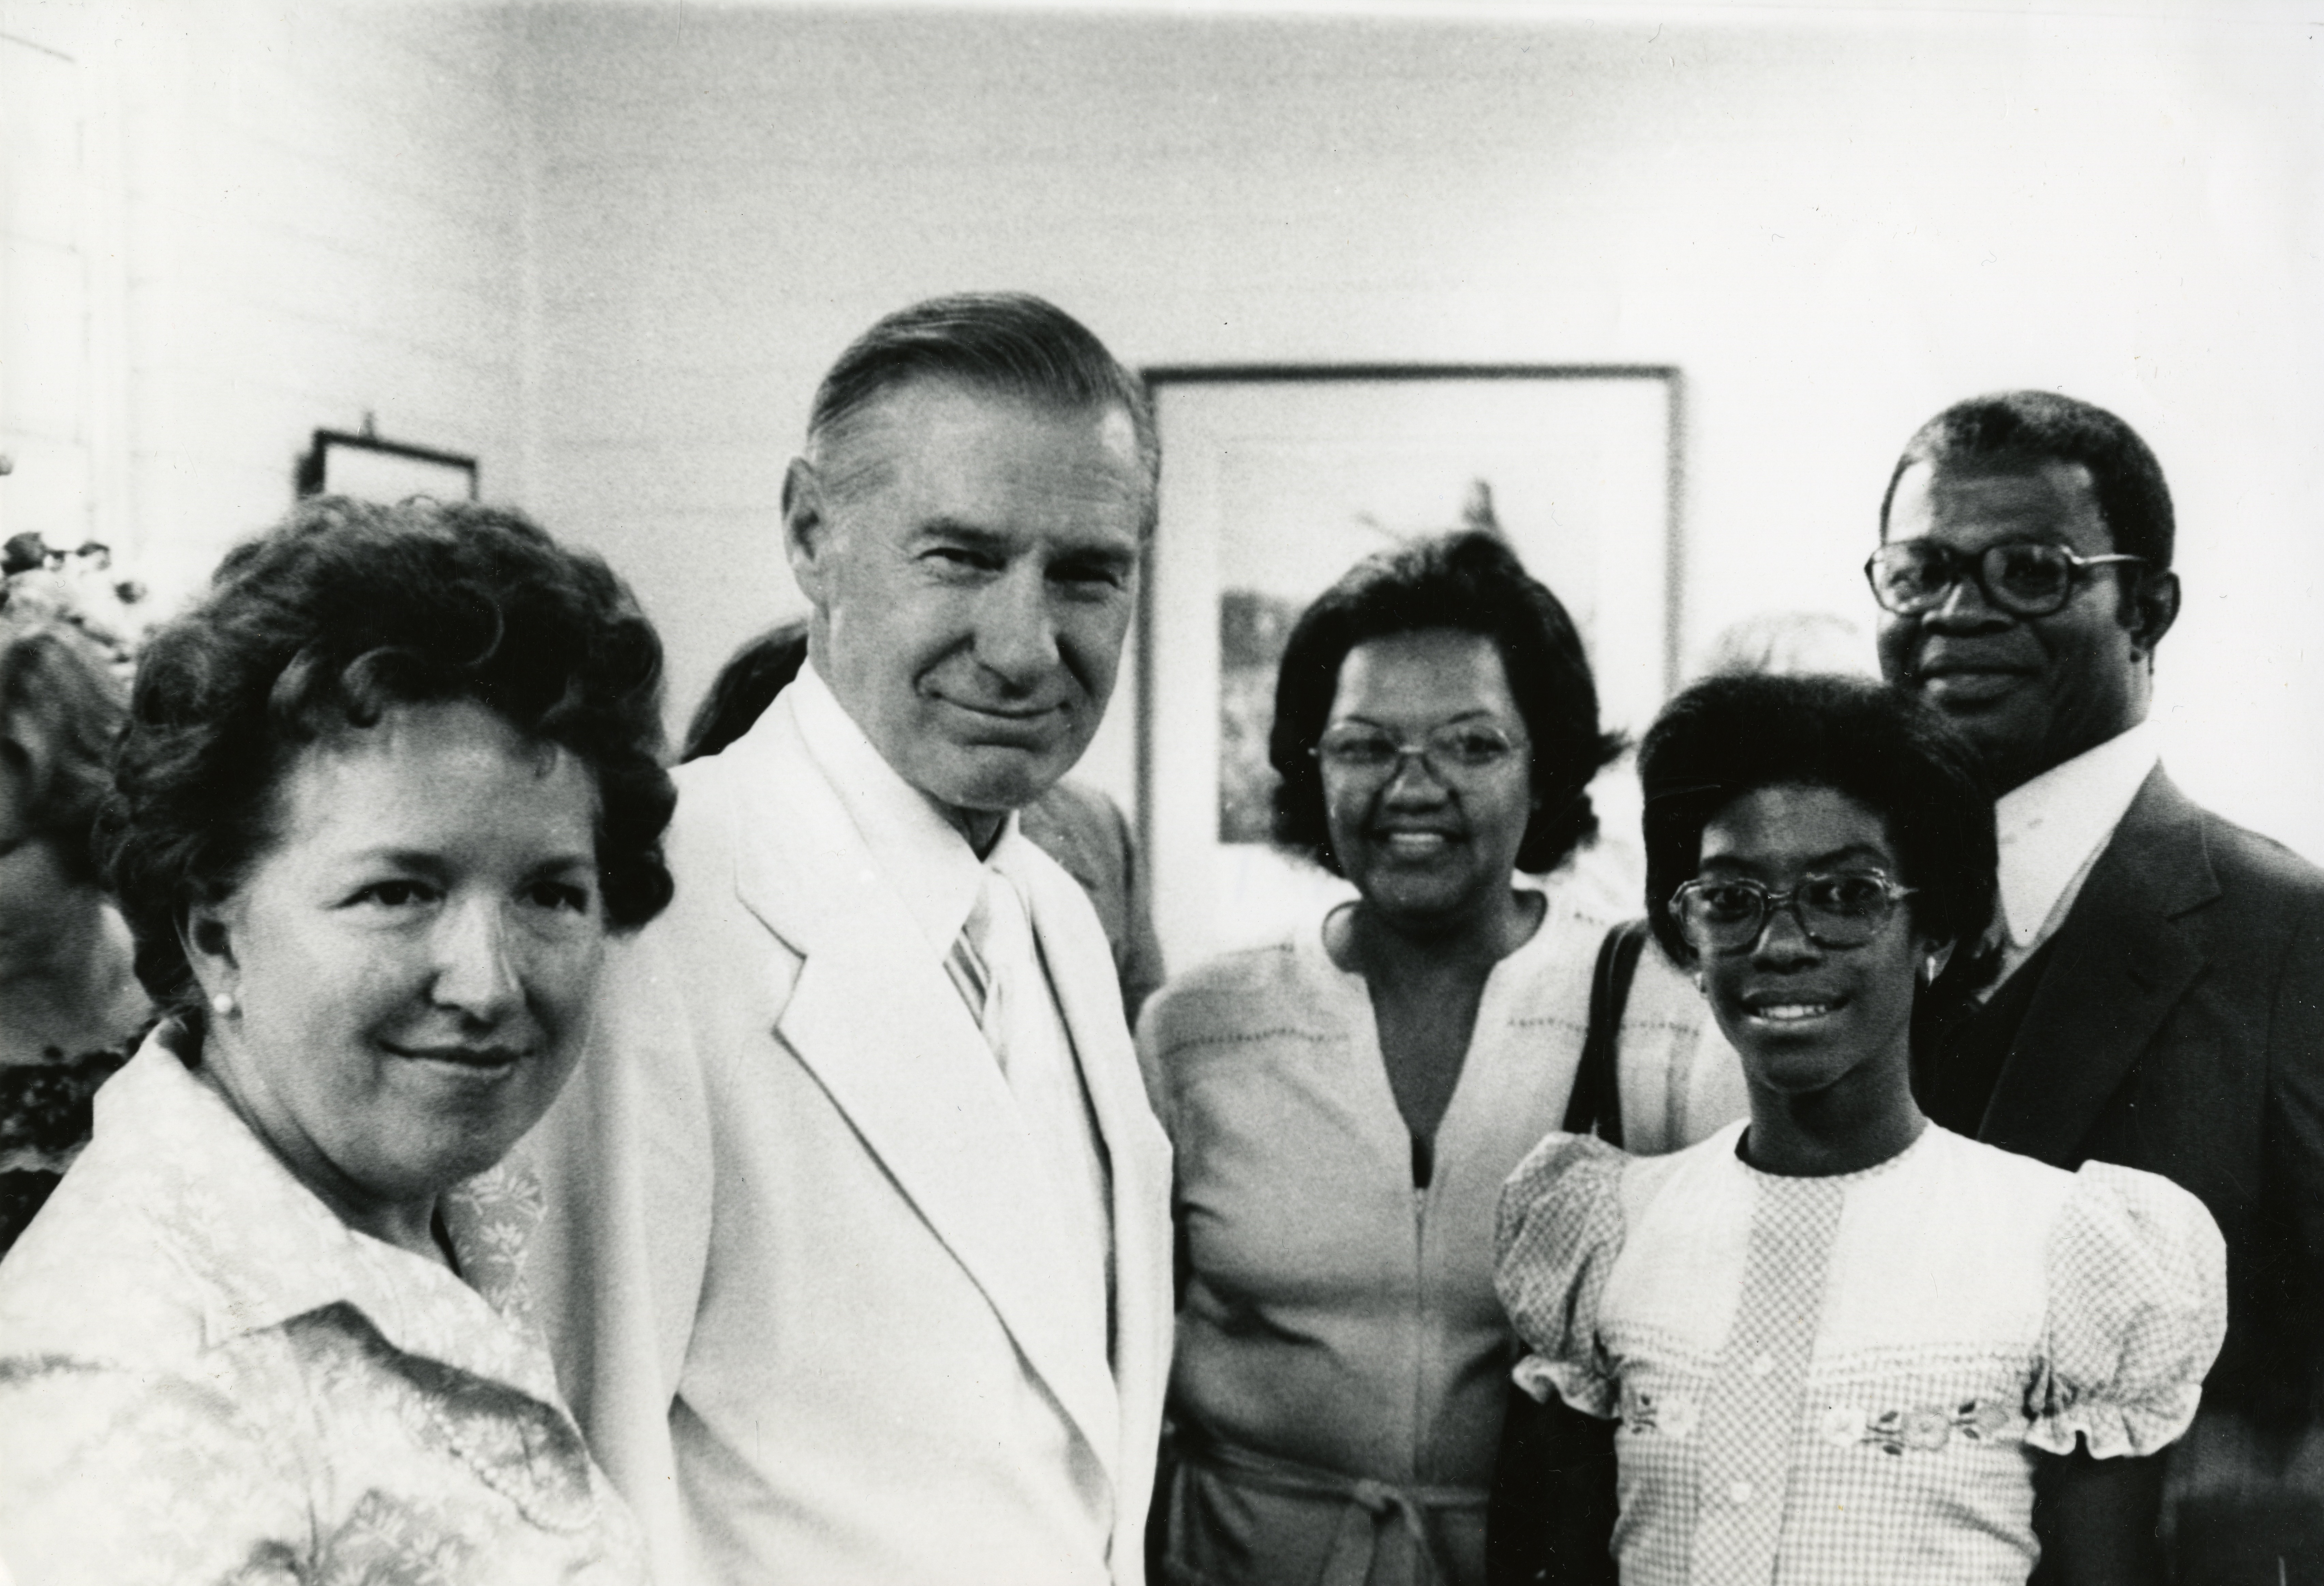 Elder James E. Faust and his wife, Sister Ruth Faust, left, with Helvécio Martins and his family at the dedication of the São Paolo Brazil Temple in November 1978.